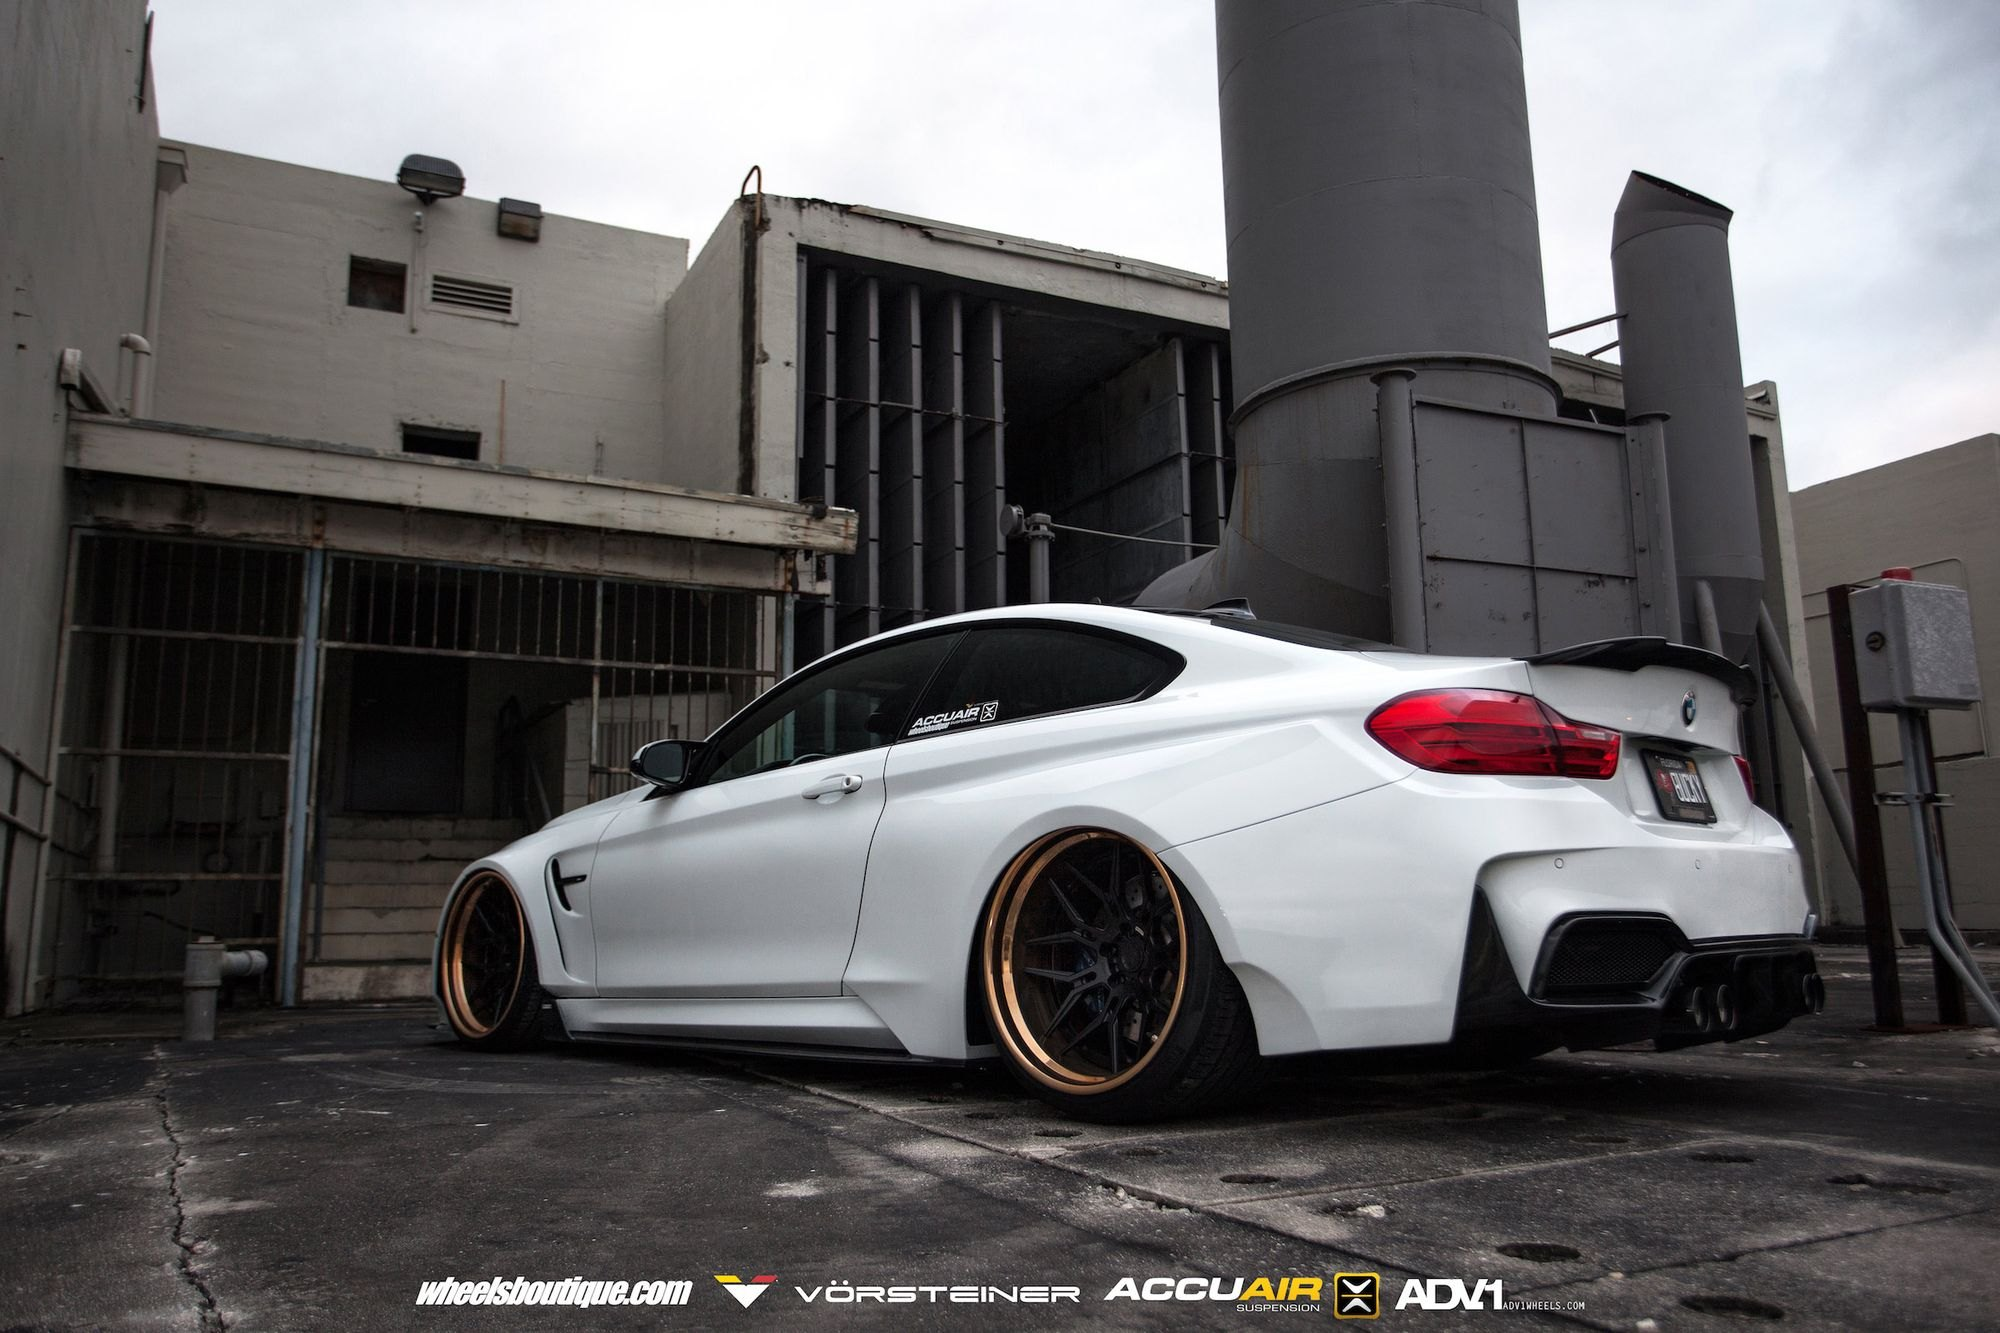 Heavily Modified Bmw M4 Coupe Slammed To The Ground Carid Com Gallery